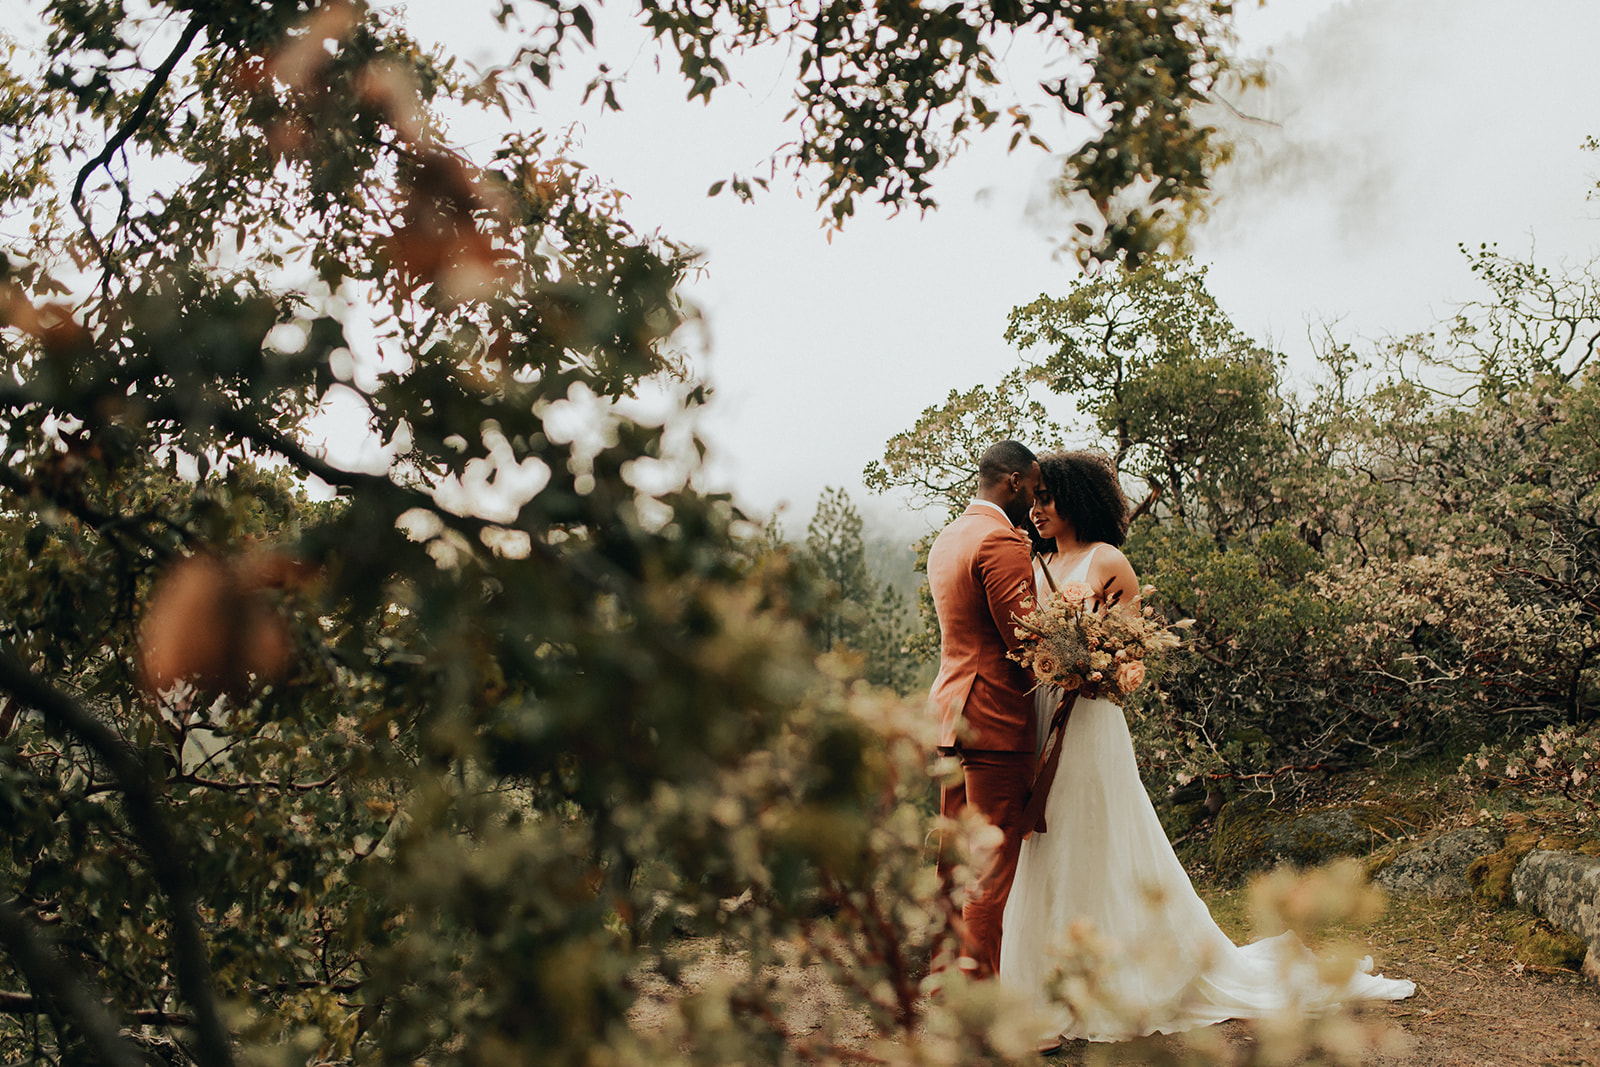 Yosemite_Elopement_Hannah_Alena_Photo_Portland_Wedding_Photographer-99.jpg